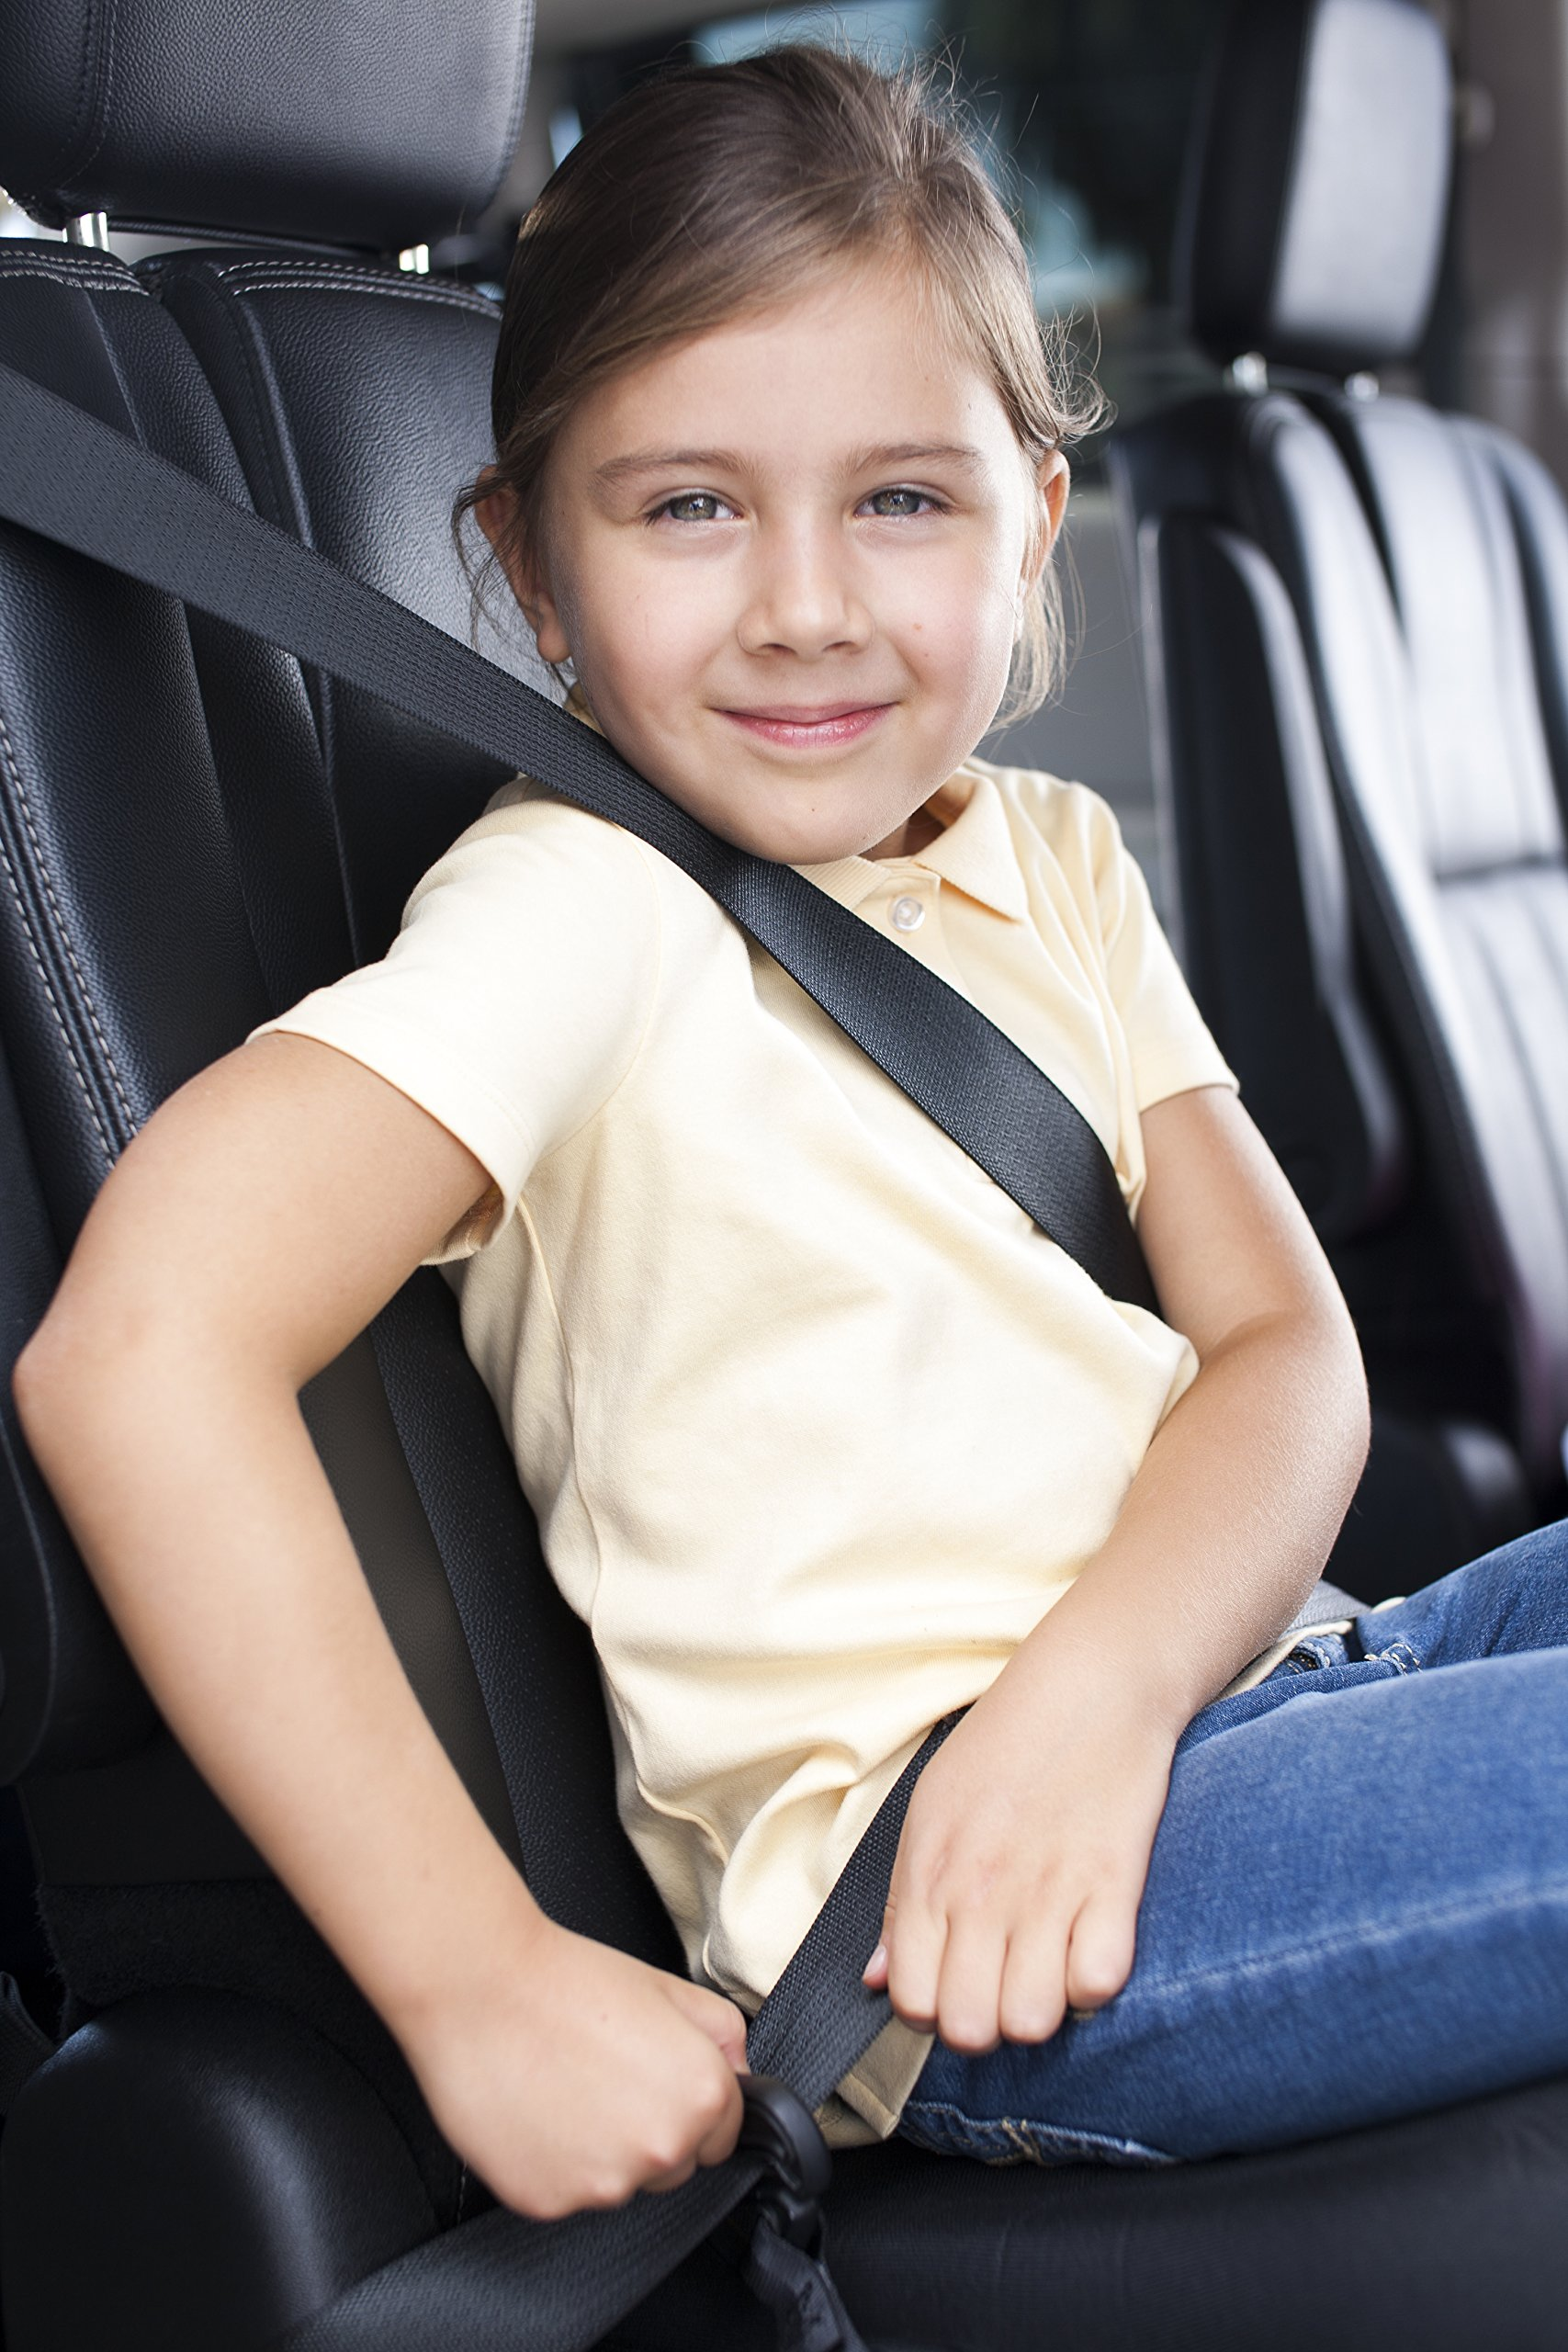 Safety 1st Incognito Kid Seat Belt Positioning Booster Seat